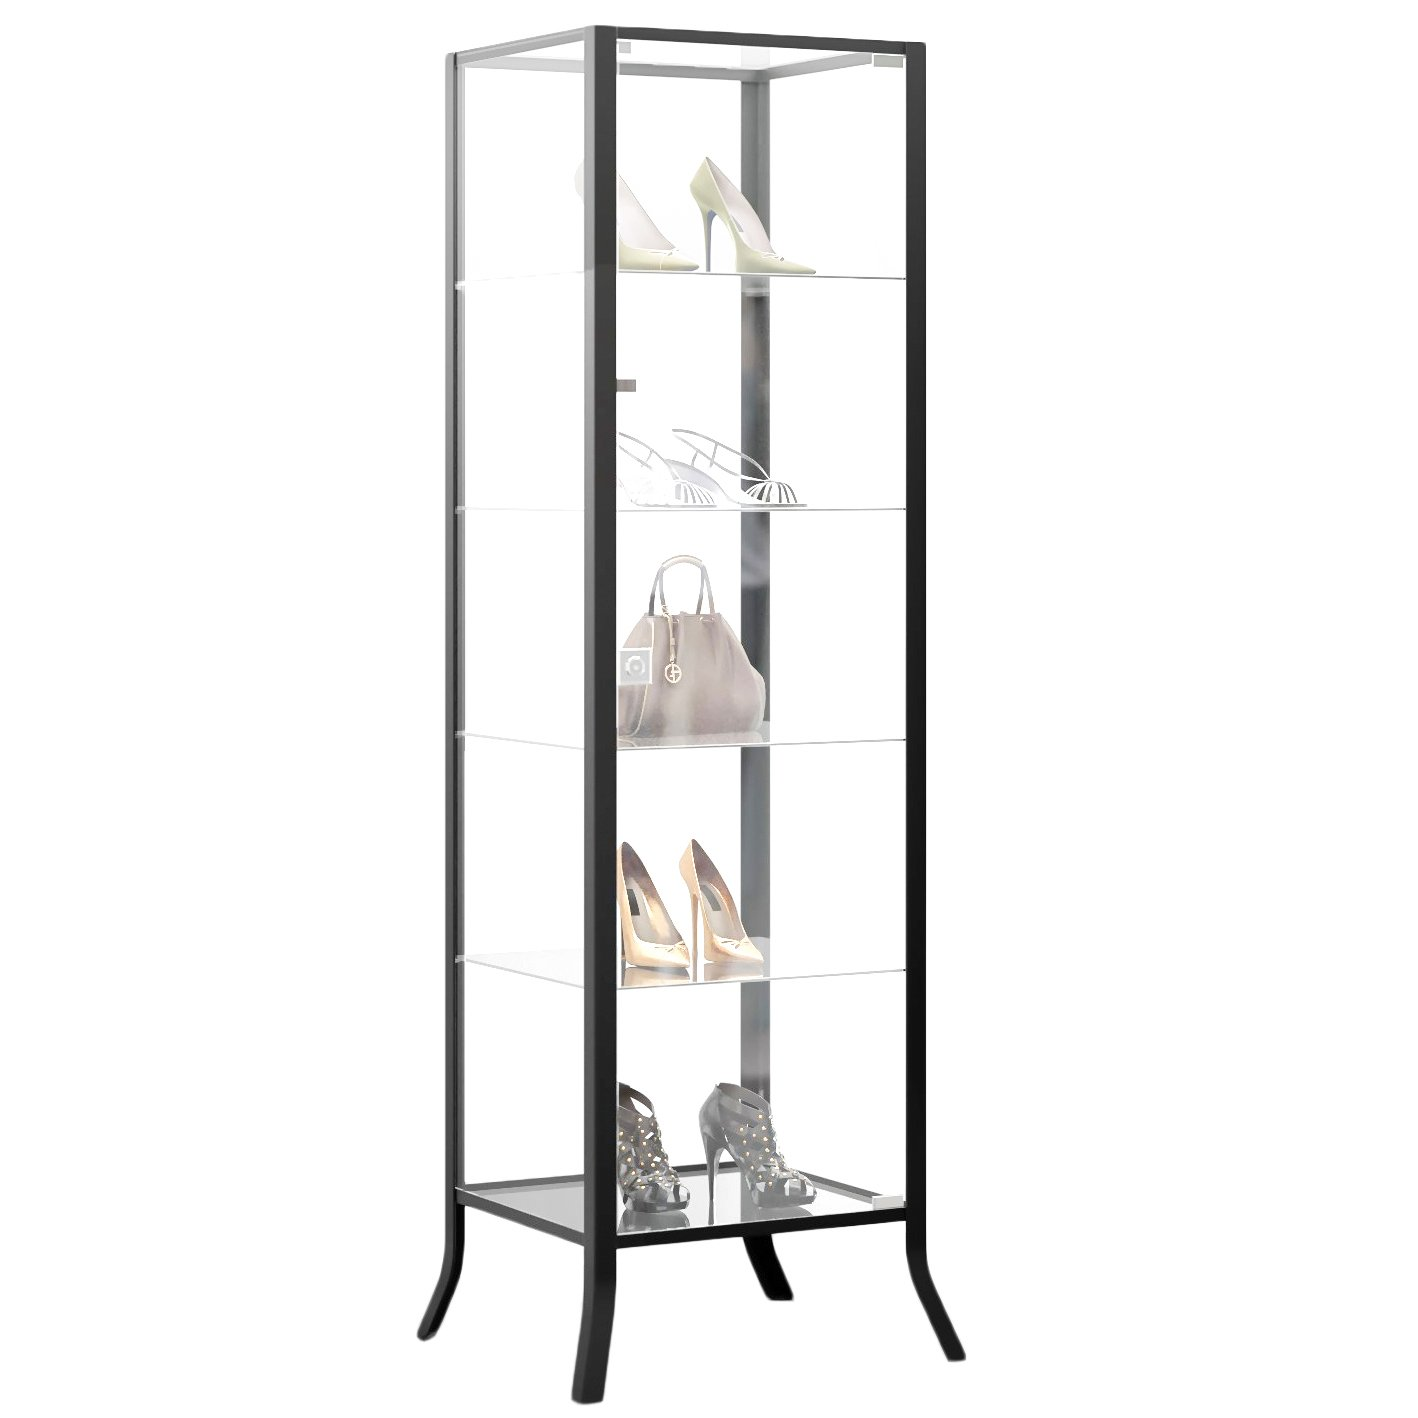 Amazon.com: Curio Cabinet Display With Glass Door And Lock For Collectibles  And Other Items To Showcase , Durable Black Steel Frame With Industrial To  ...